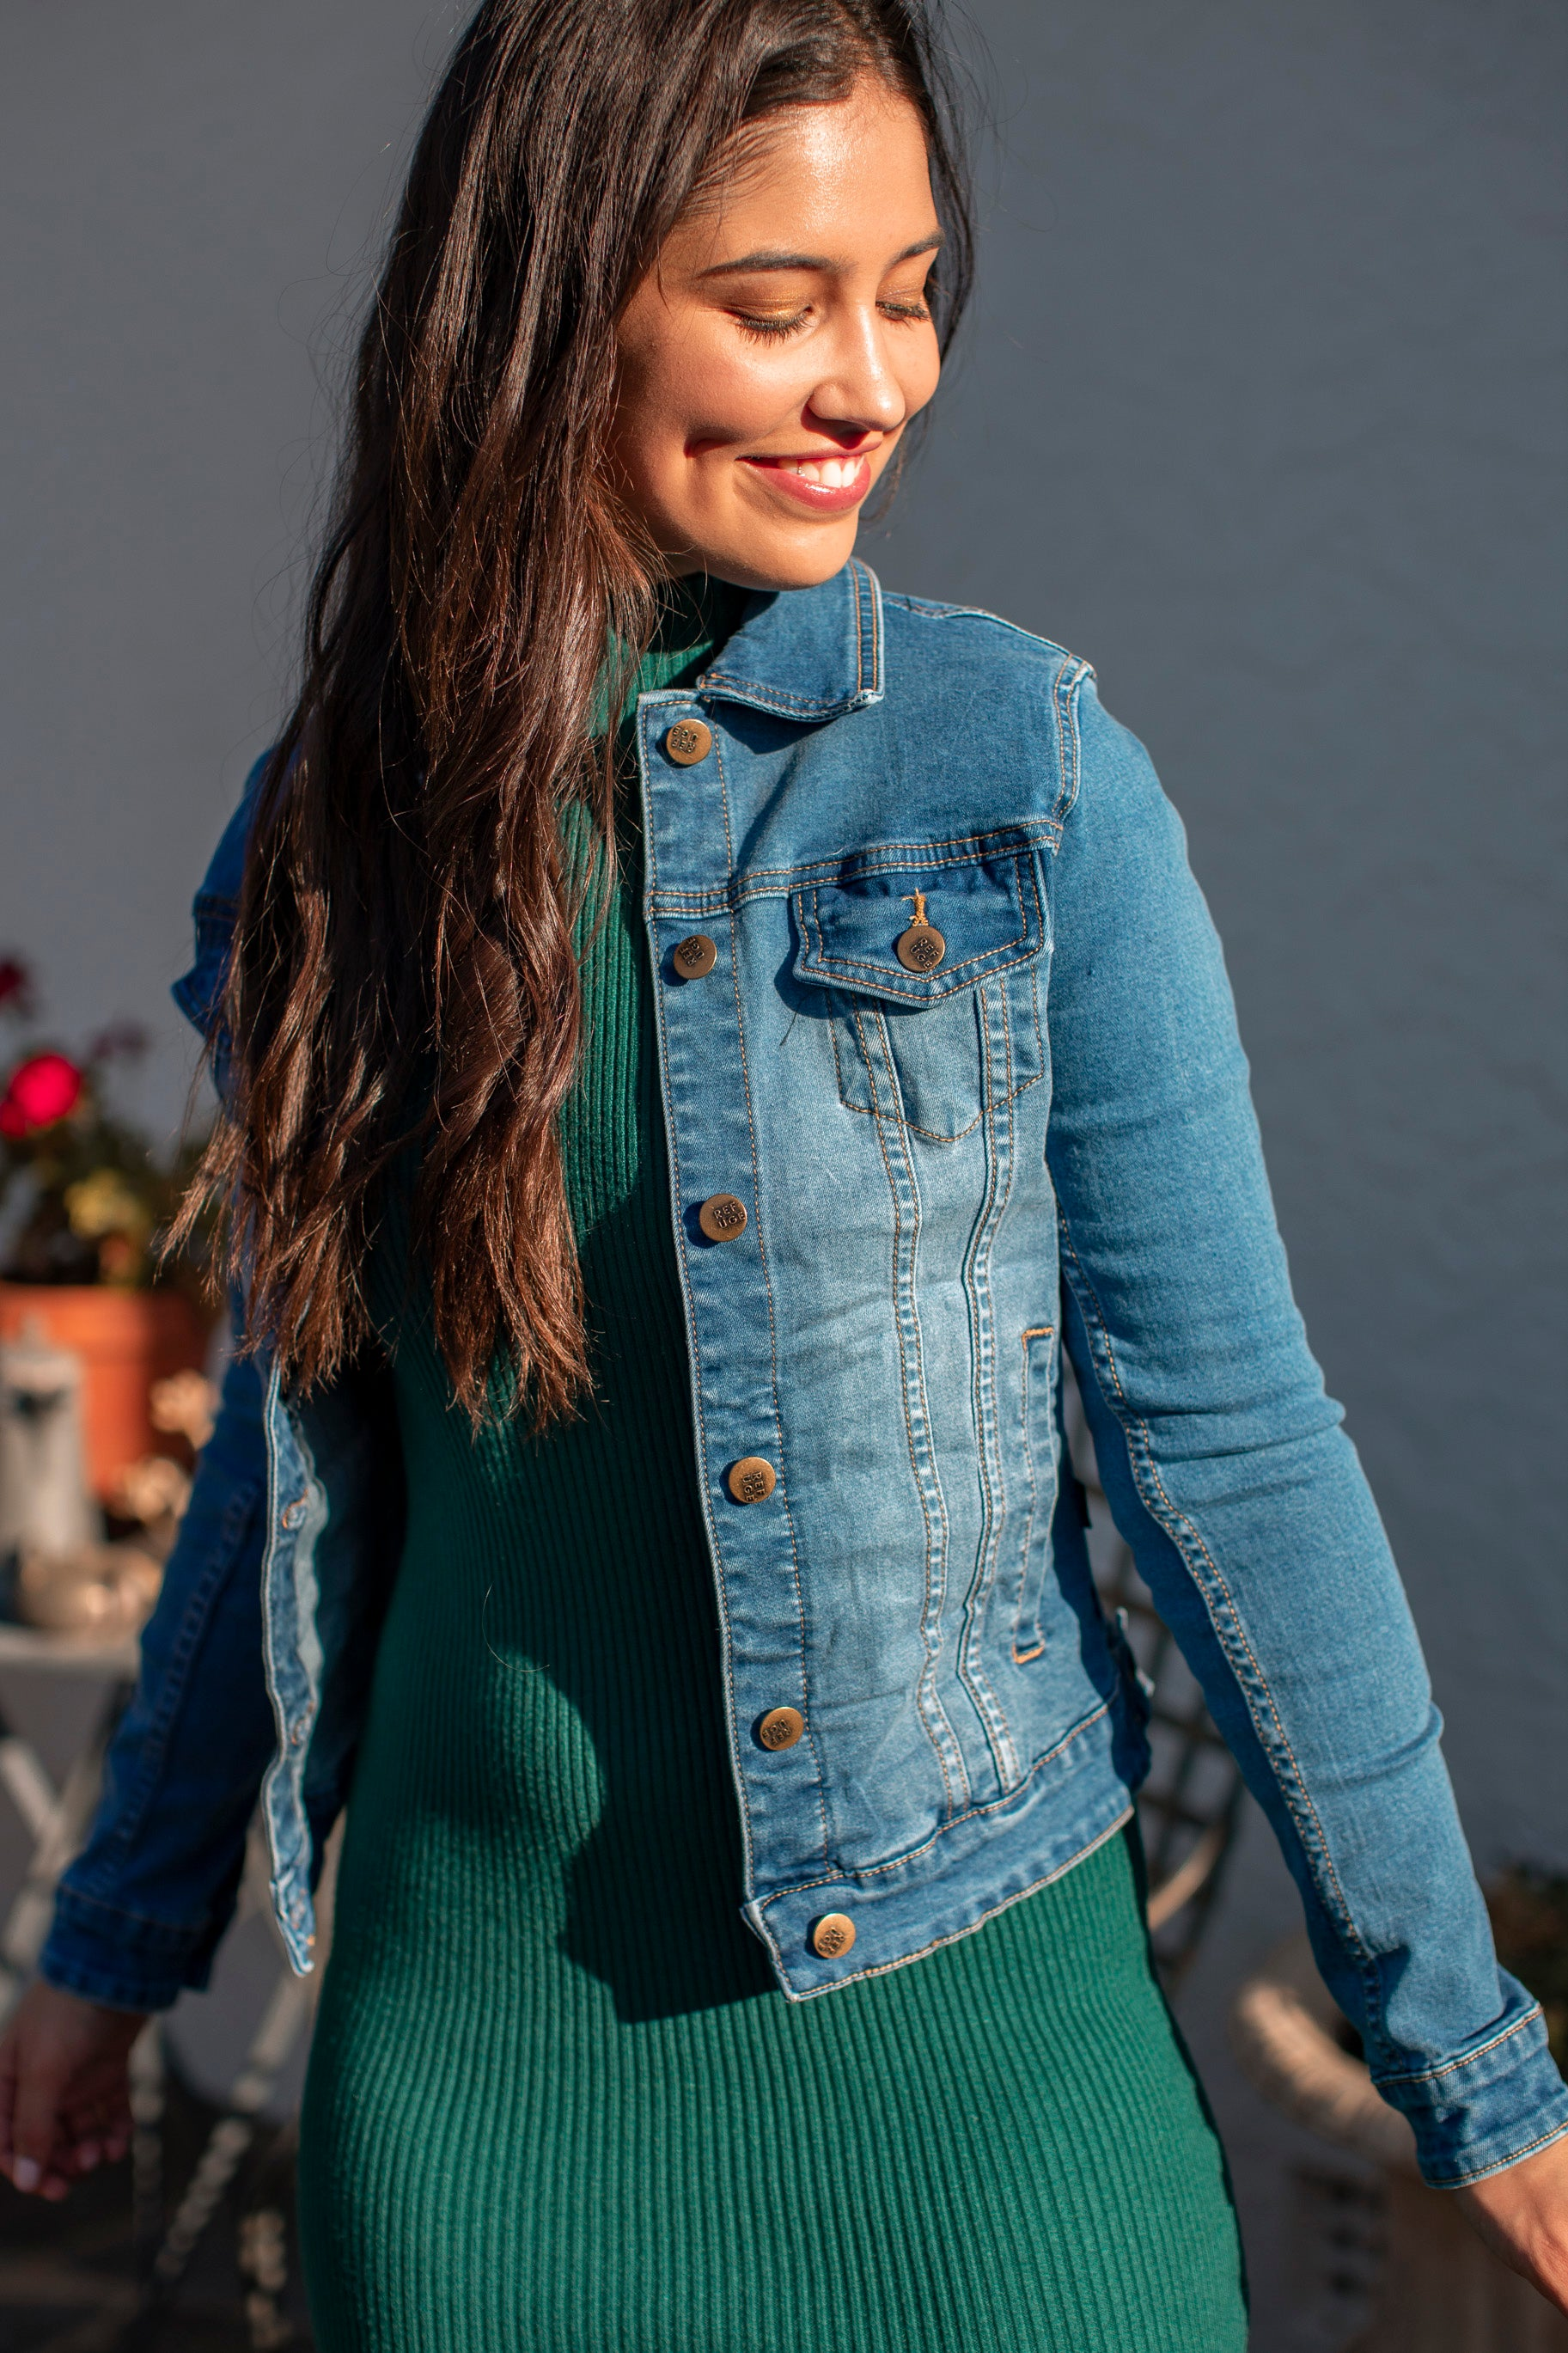 Jemma Jacket in Dark Denim